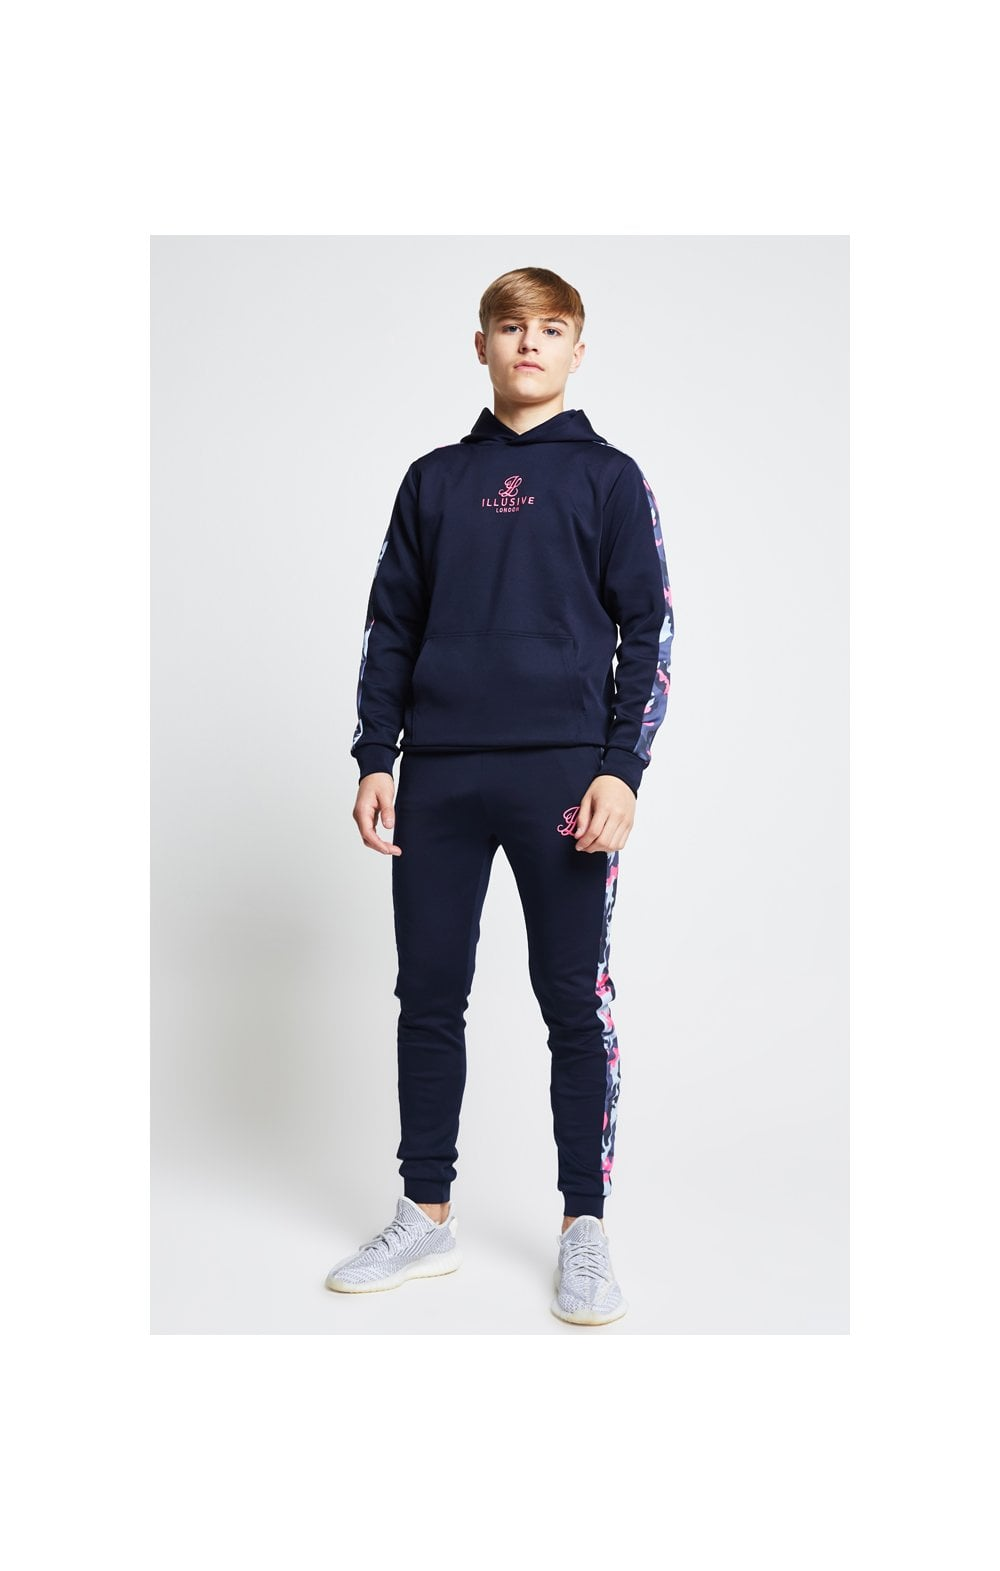 Illusive London Panelled Overhead Hoodie - Navy & Neon Pink Camo (5)